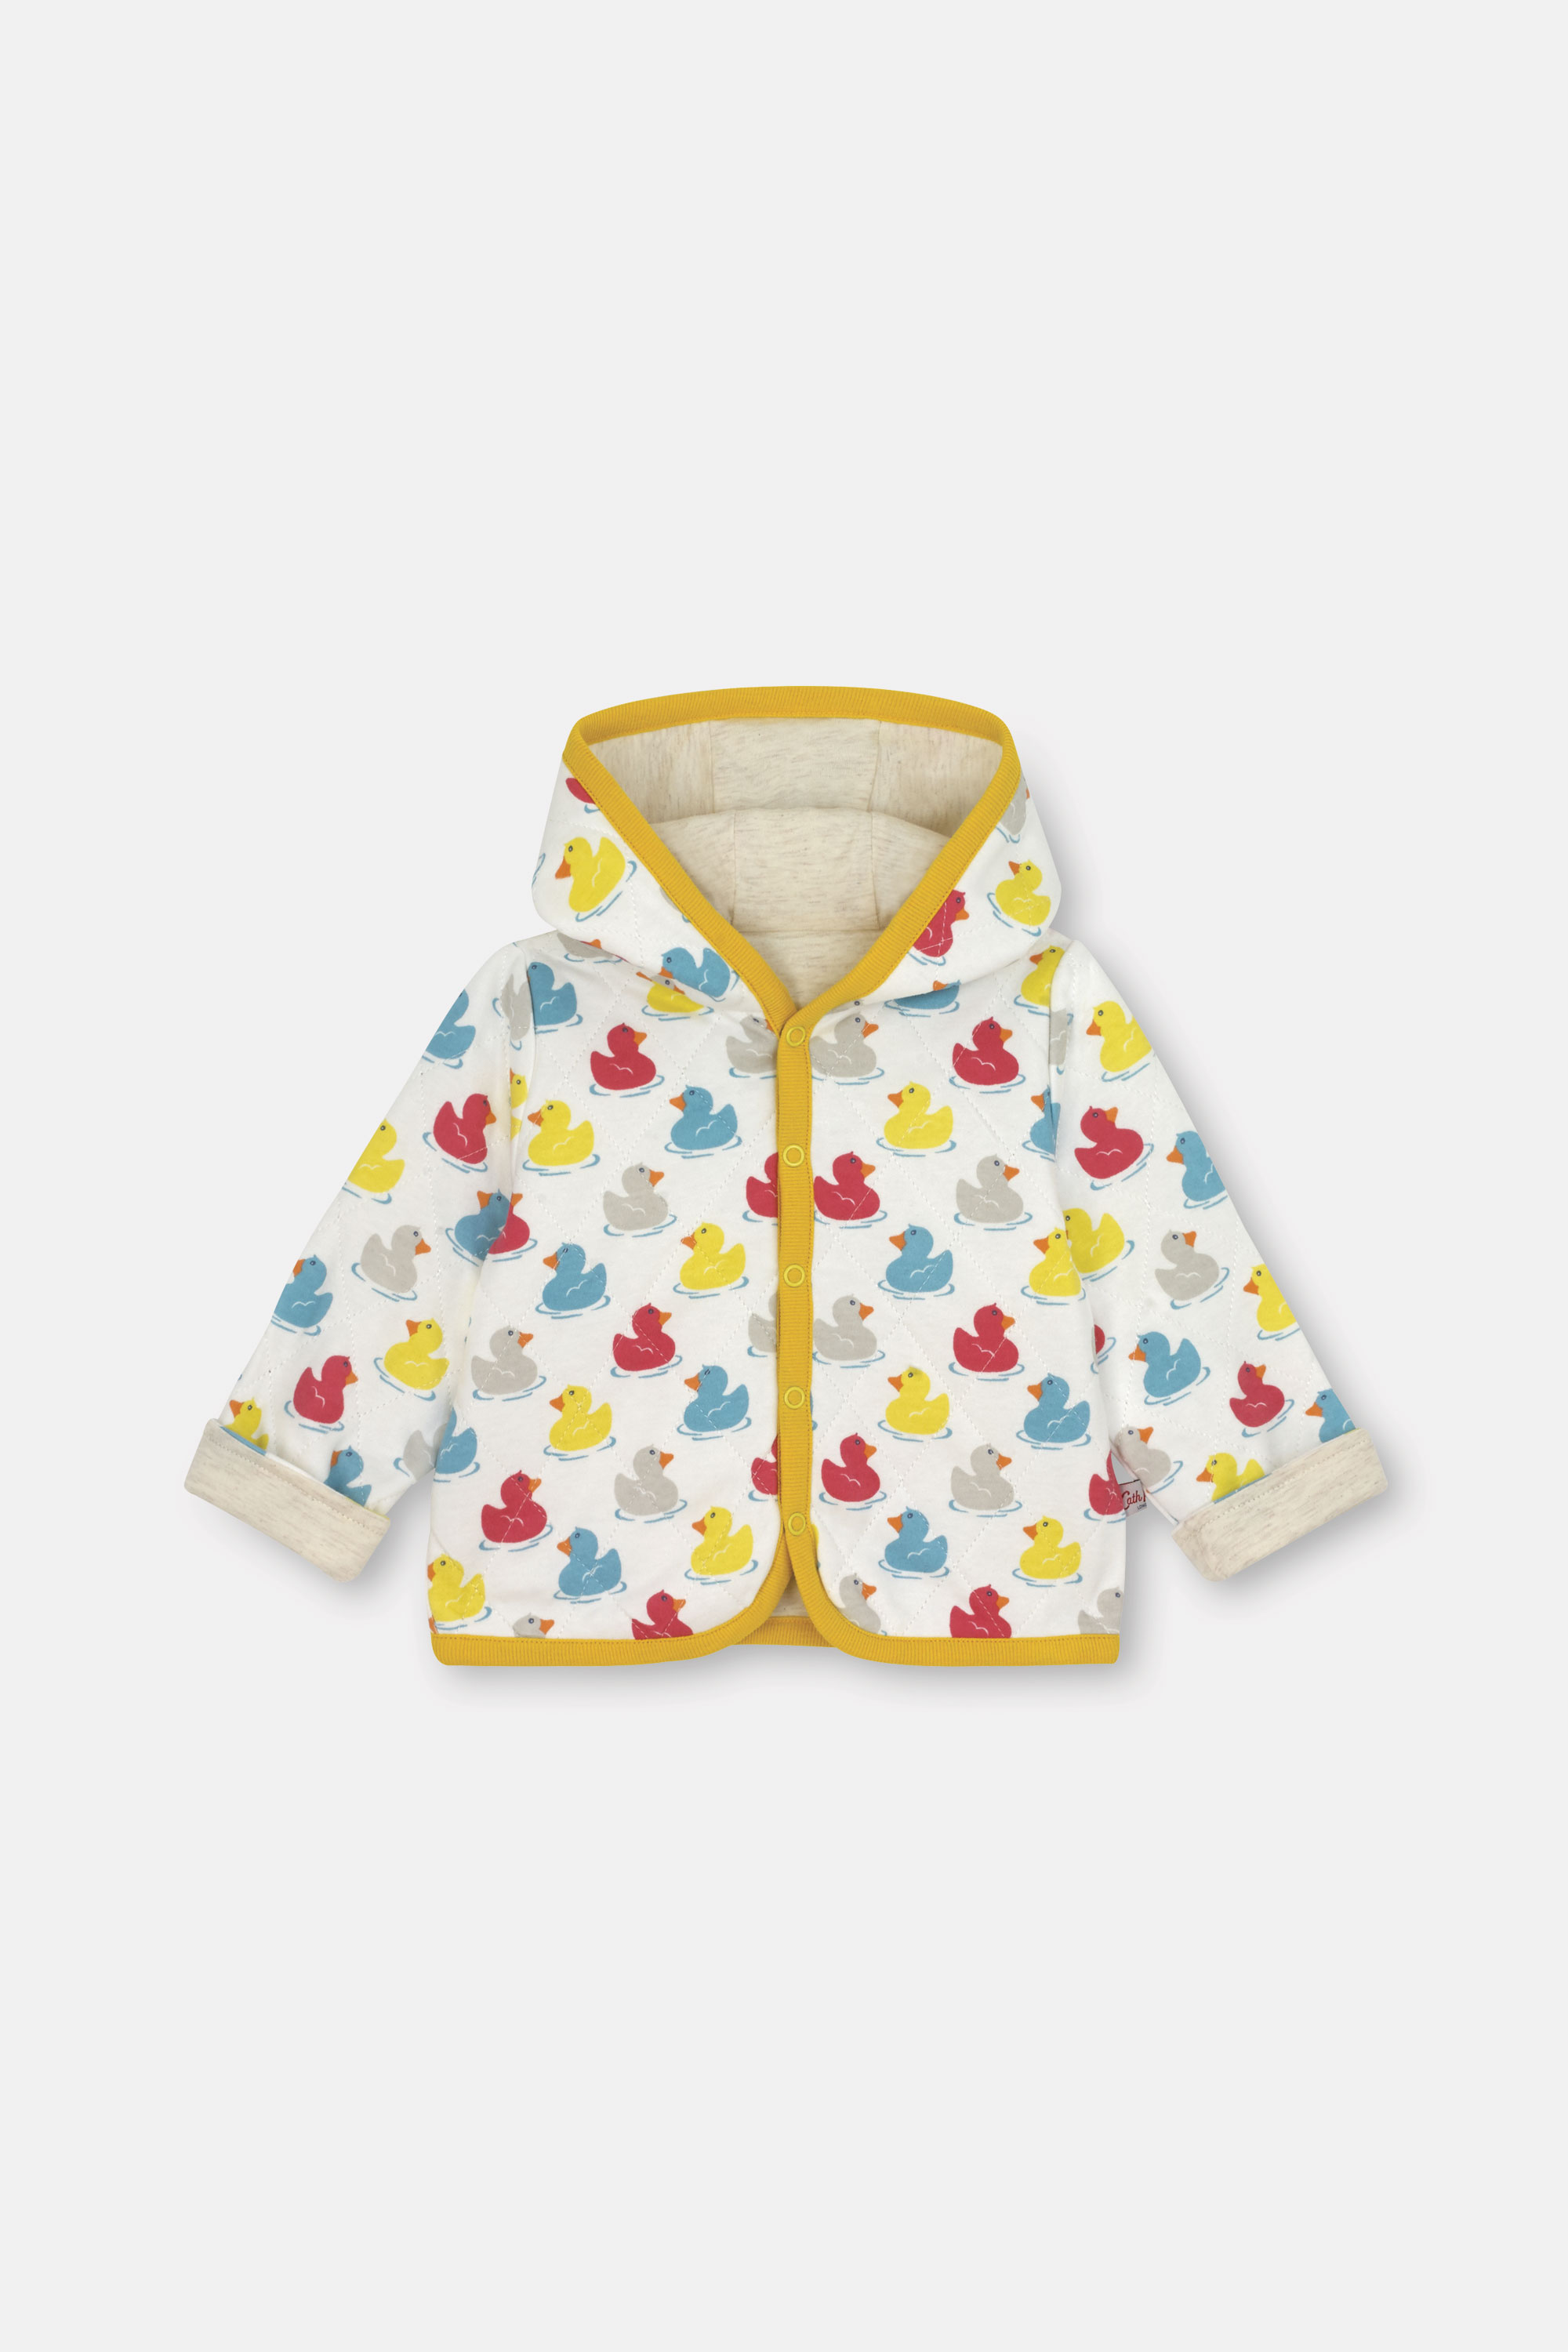 Cath Kidston Rubber Duck Baby Hooded Quilted Jacket in Cream, 6-9 Mo